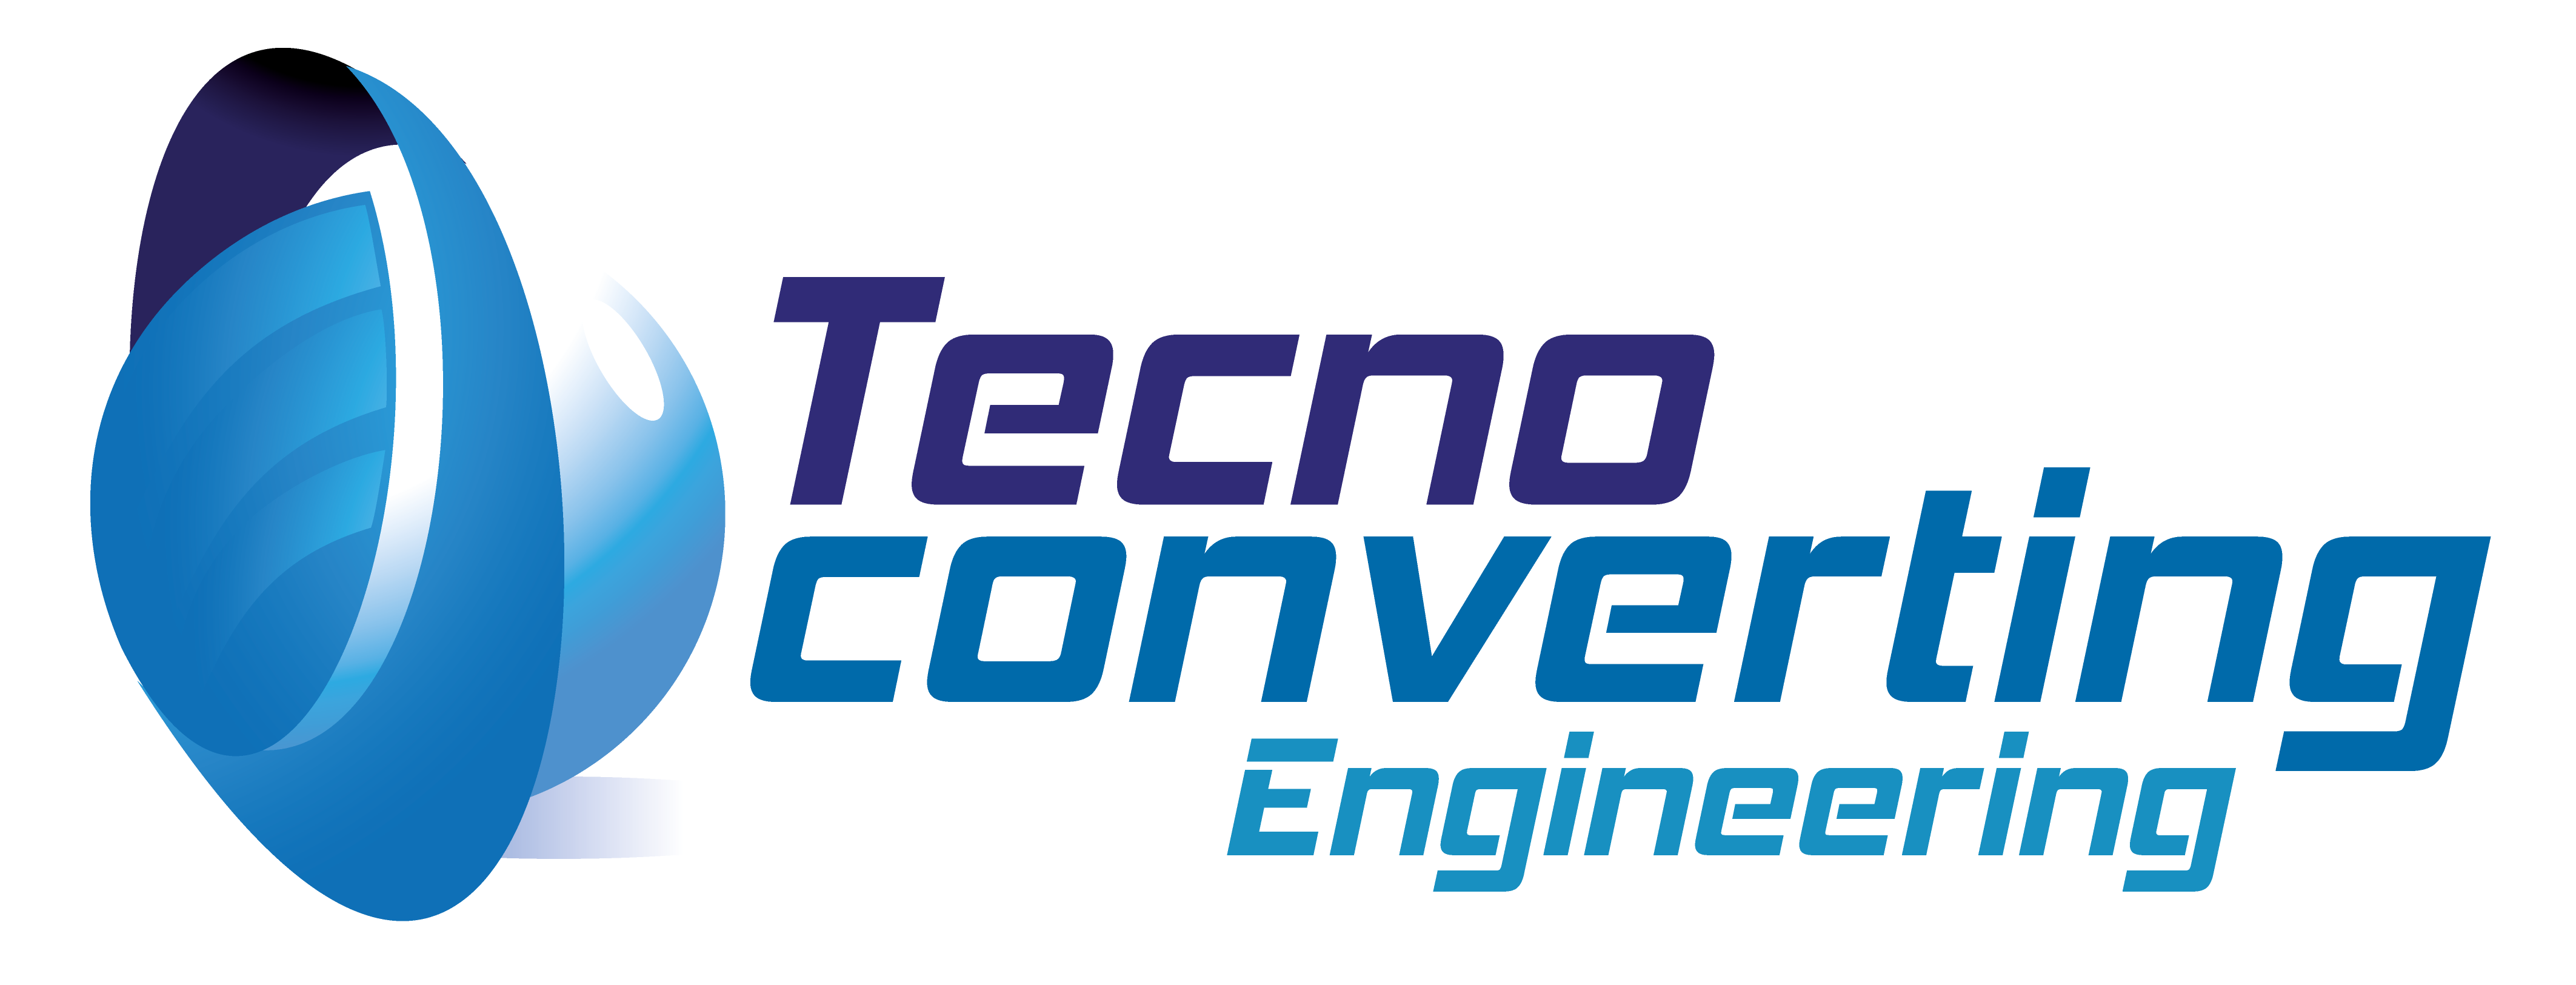 TecnoConverting Ingeniería